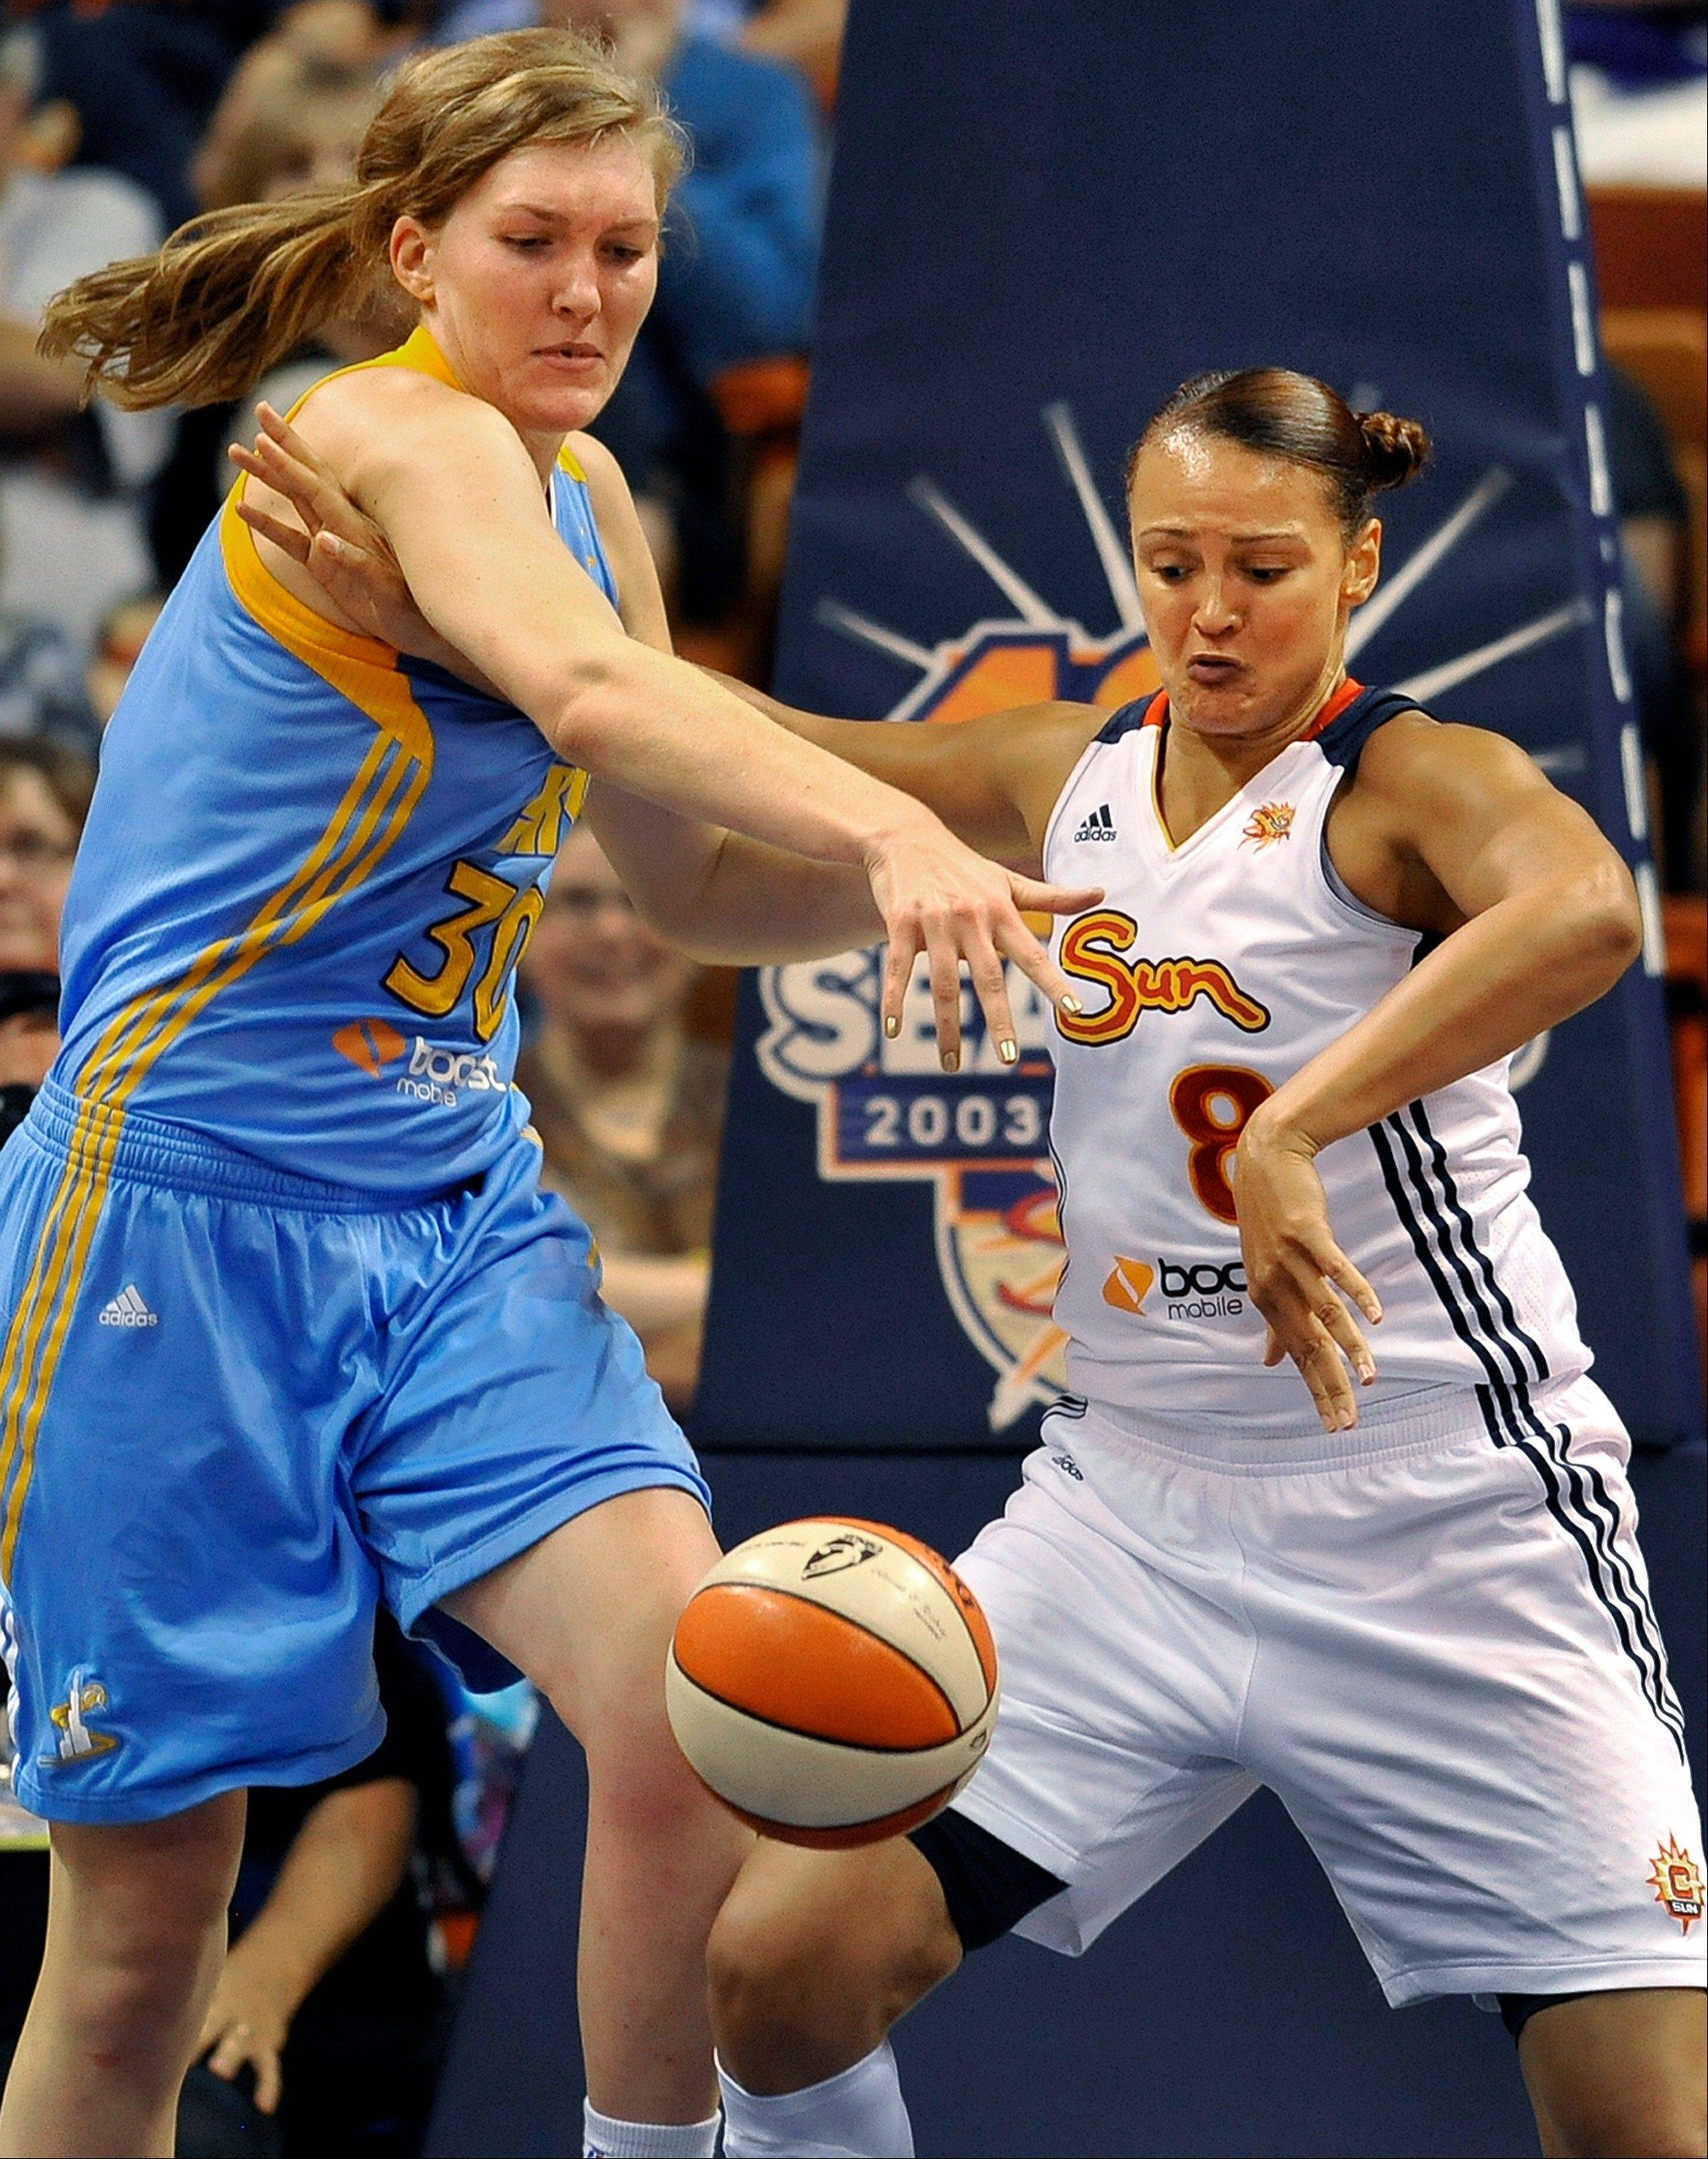 Chicago Sky center Carolyn Swords, left, and Connecticut Sun�s Mistie Mims battle for a rebound Sunday in Uncasville, Conn. Swords filled in for Sylvia Fowles, who missed the game for personal reasons, and contributed 14 points.